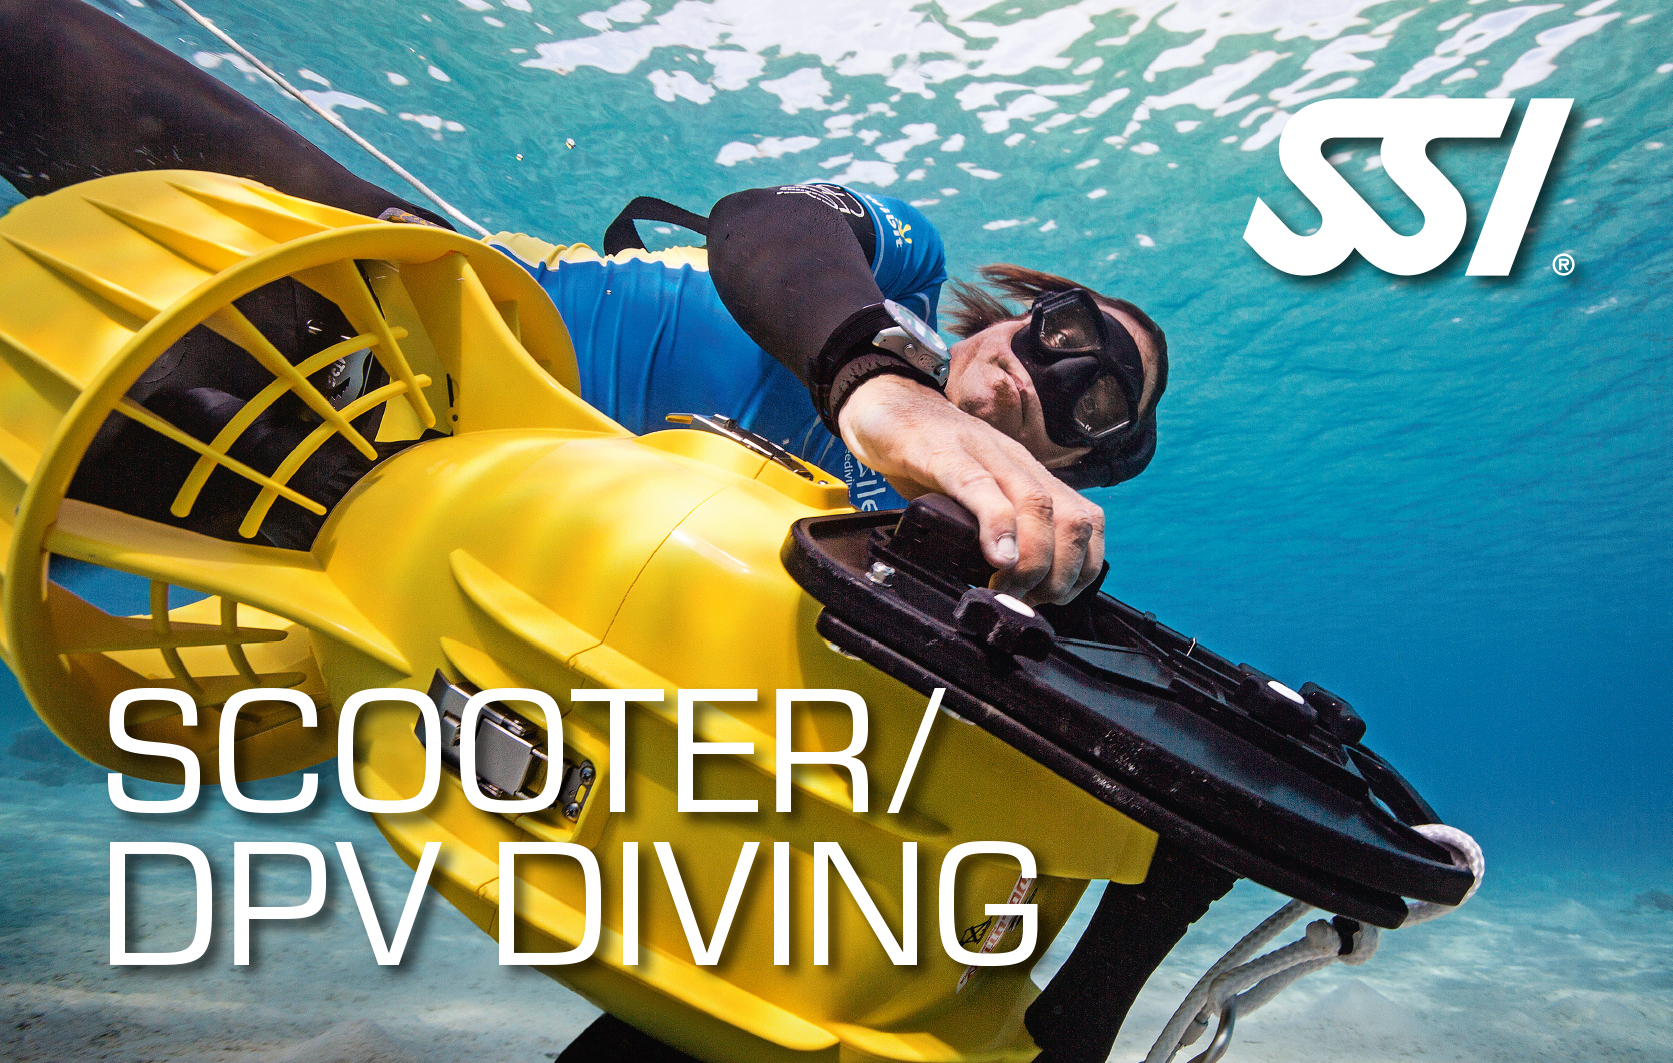 Scooter/DPV Diving